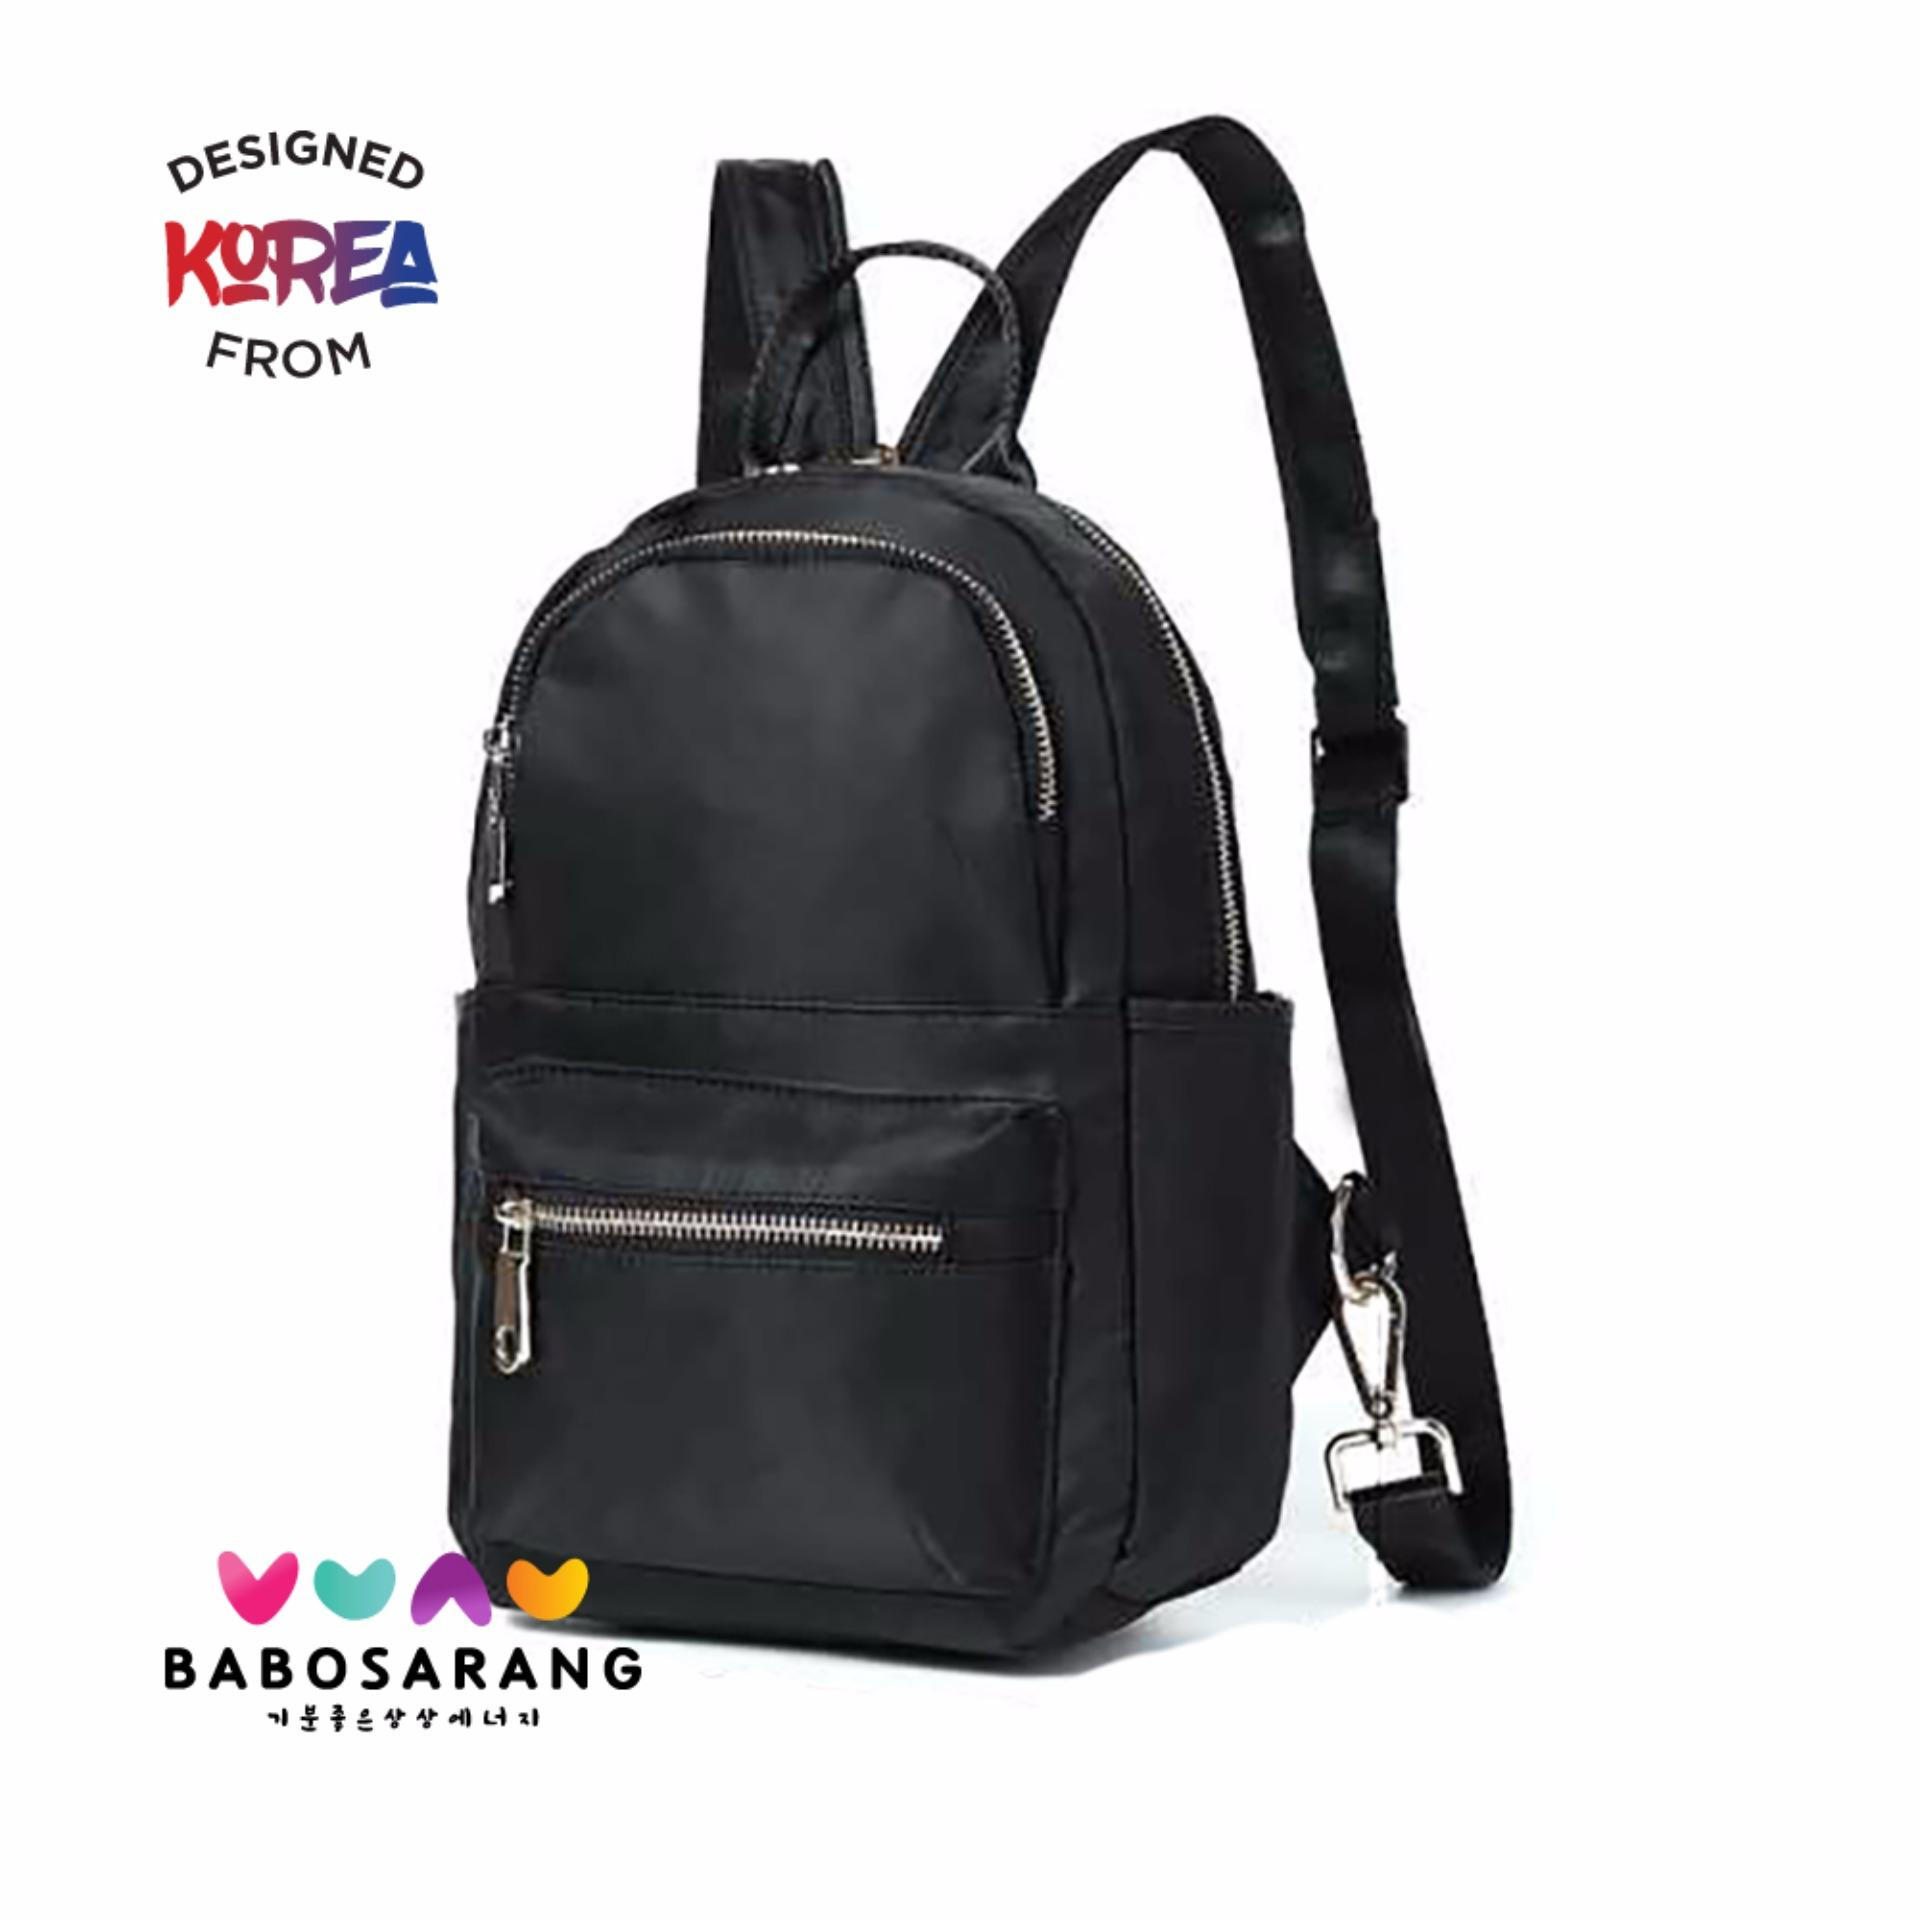 Jual Korean Fashion Style Babosarang Tas Ransel Batam Wanita Backpack Korea Model Fashion Gothic Style Bs2 Murah